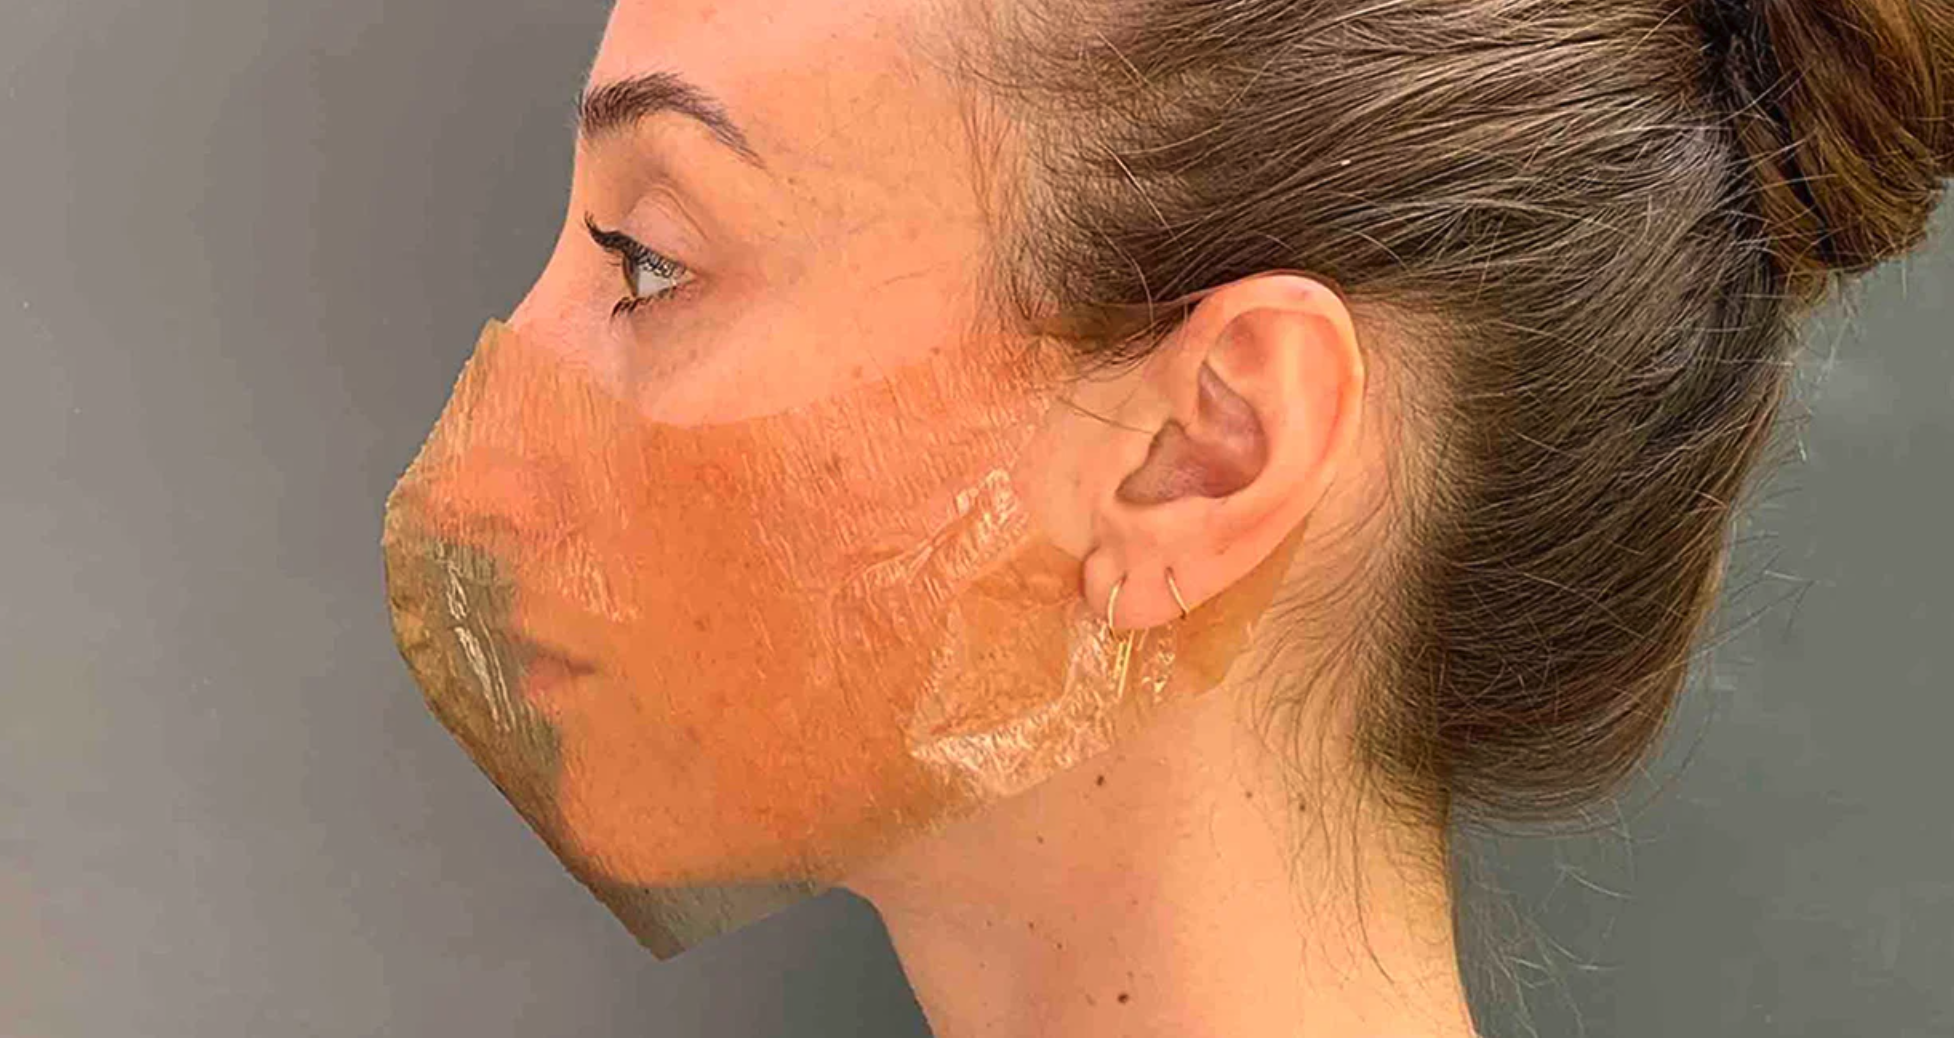 Home-Grown Cellulose Mask Promoting Biodesign